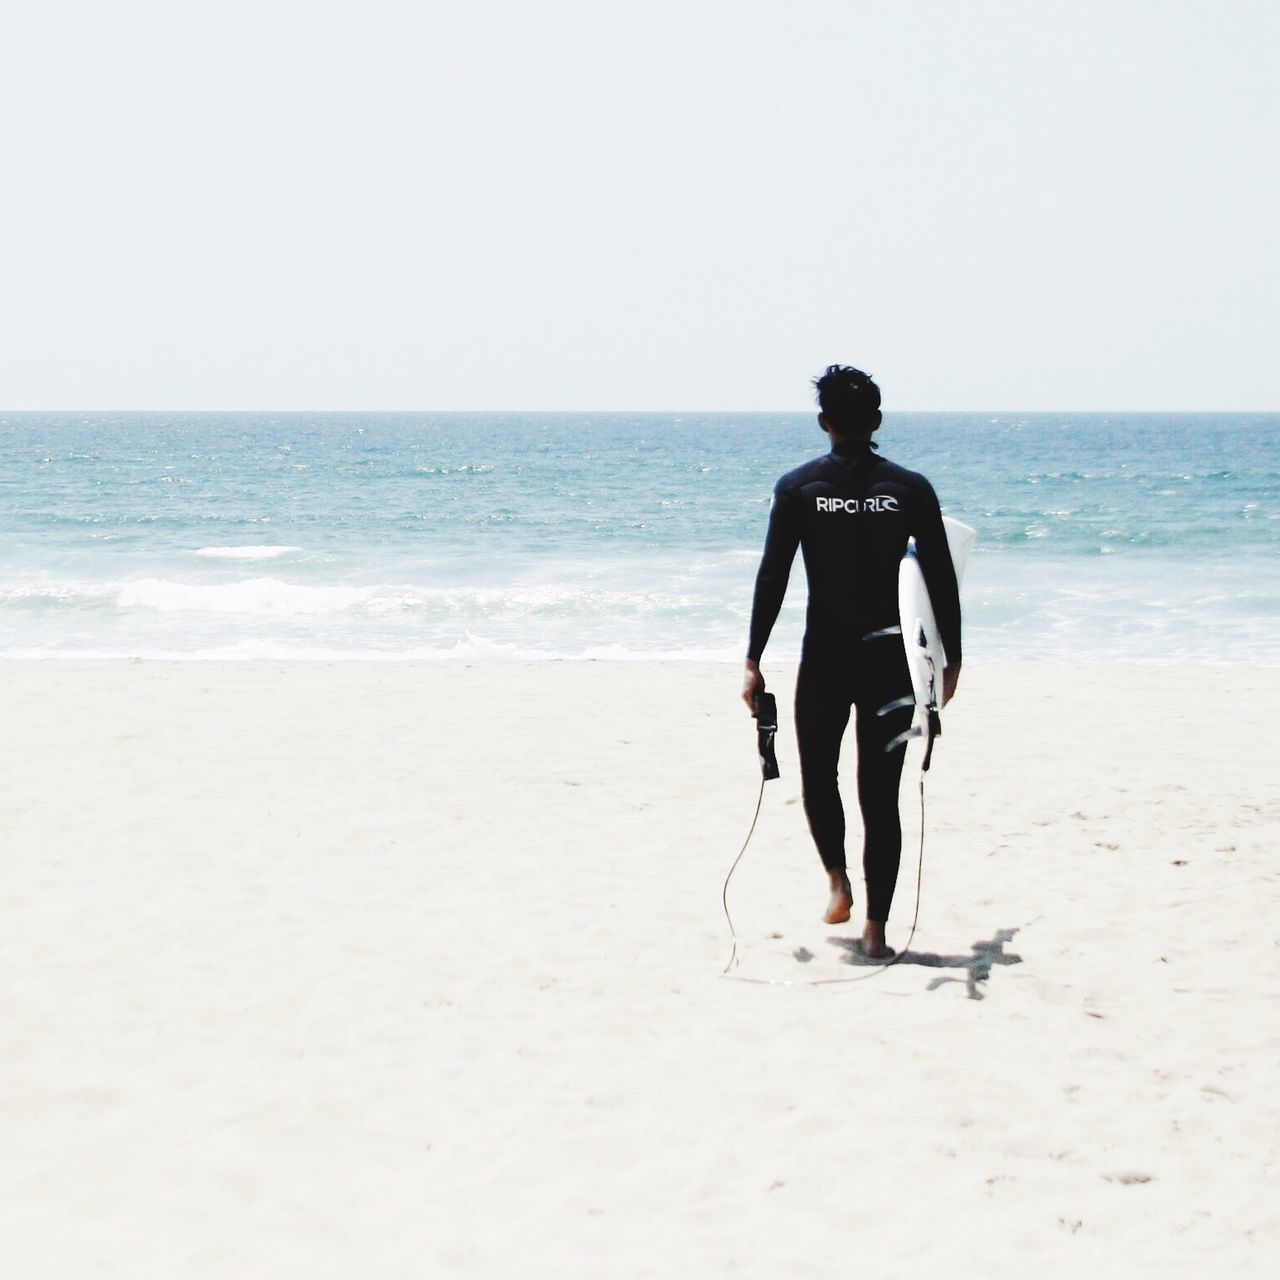 Full Length Rear View Of Man With Surfboard Walking At Beach